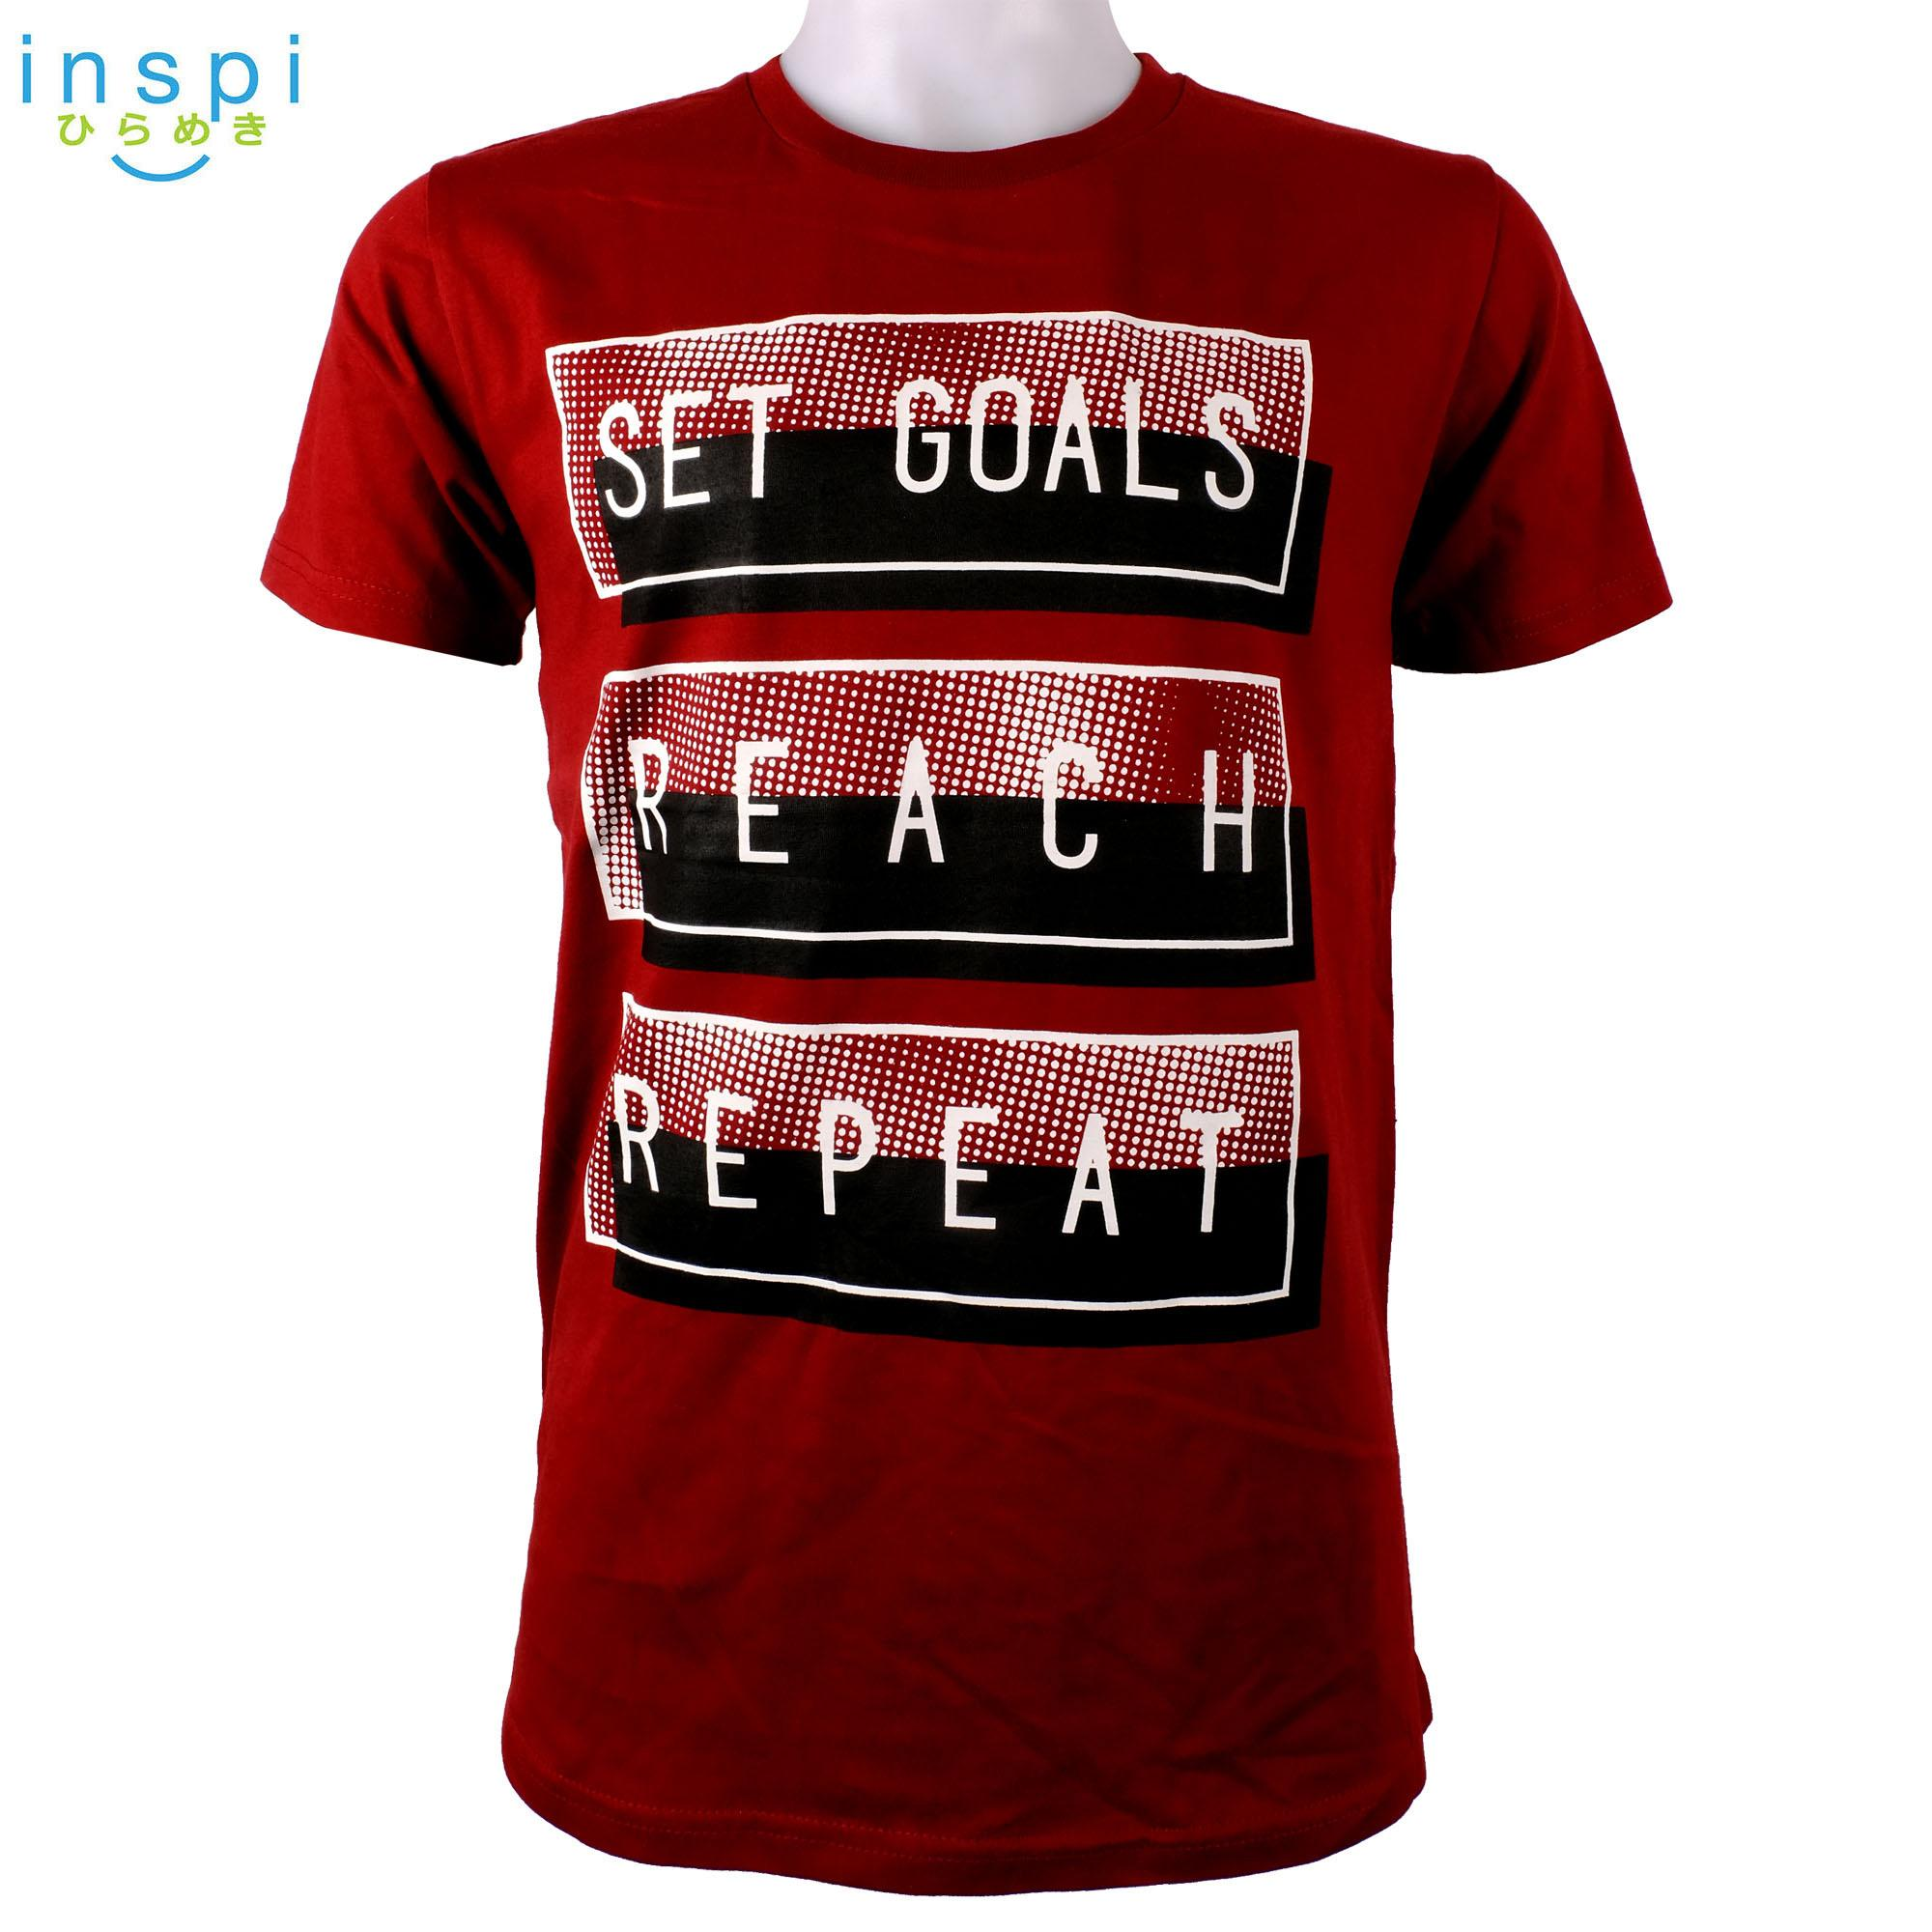 c3fc136d6a7c INSPI shirt Set goals reach repeat (Maroon) tshirt printed graphic tee Mens t  shirt